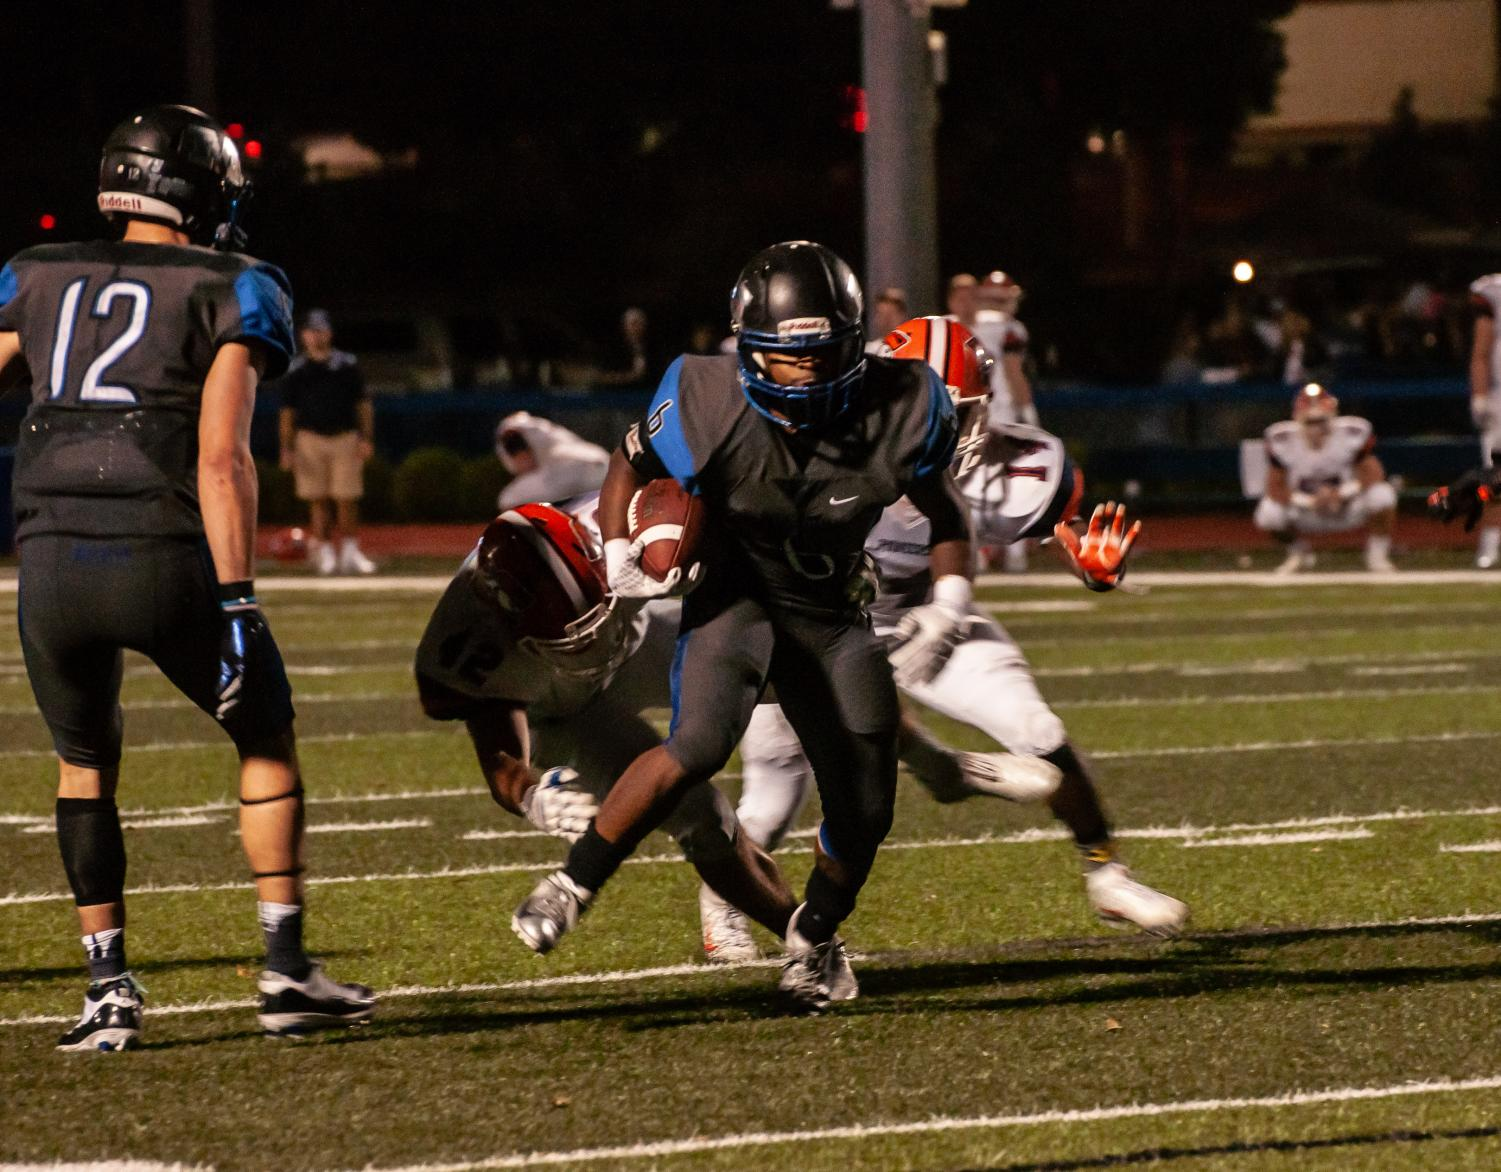 Jazontae Howard (Center) dodging Carroll Pioneers. Jordan Smith (Left) would score a touchdown on the next play.